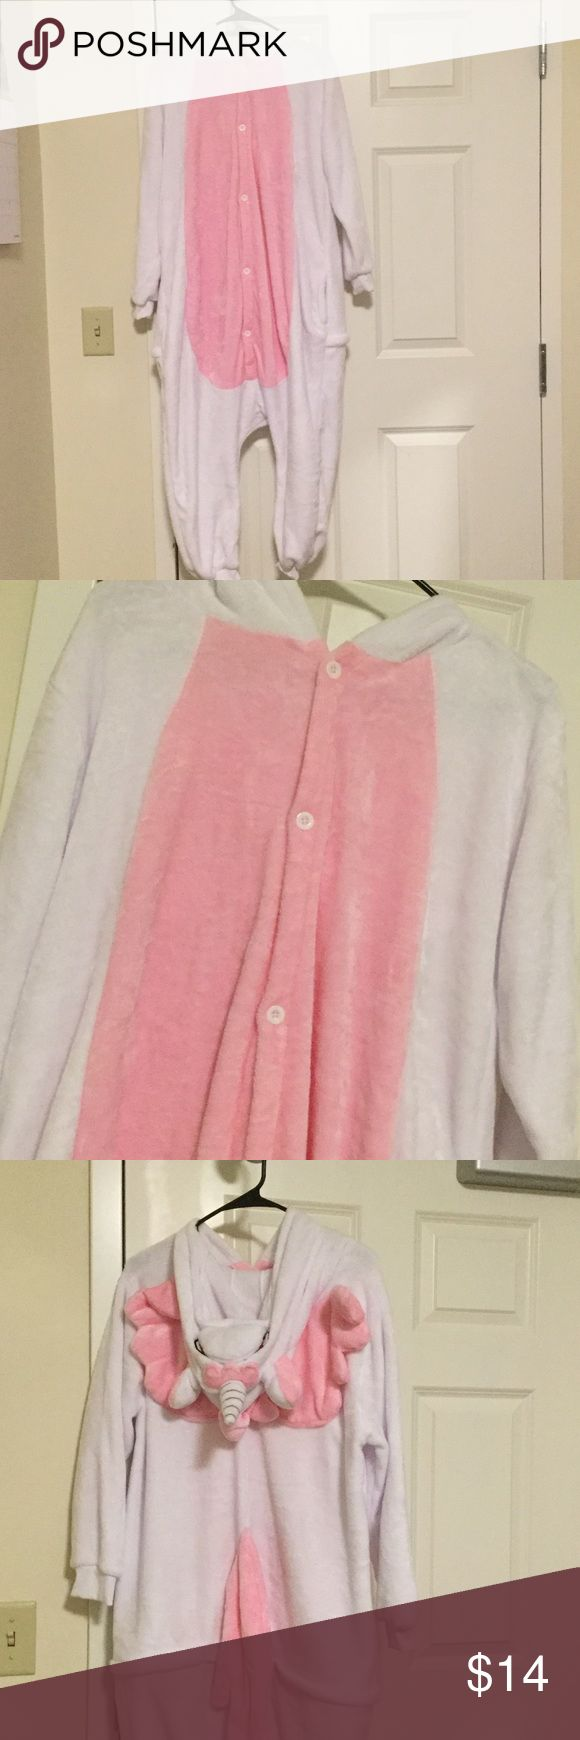 A pink unicorn costume for Halloween! Big sale🔴🔴 It's worn once only. It's from Amazon. Comfortable materials and you could wear it as pajama! Perfect for dressing up Halloween! Other